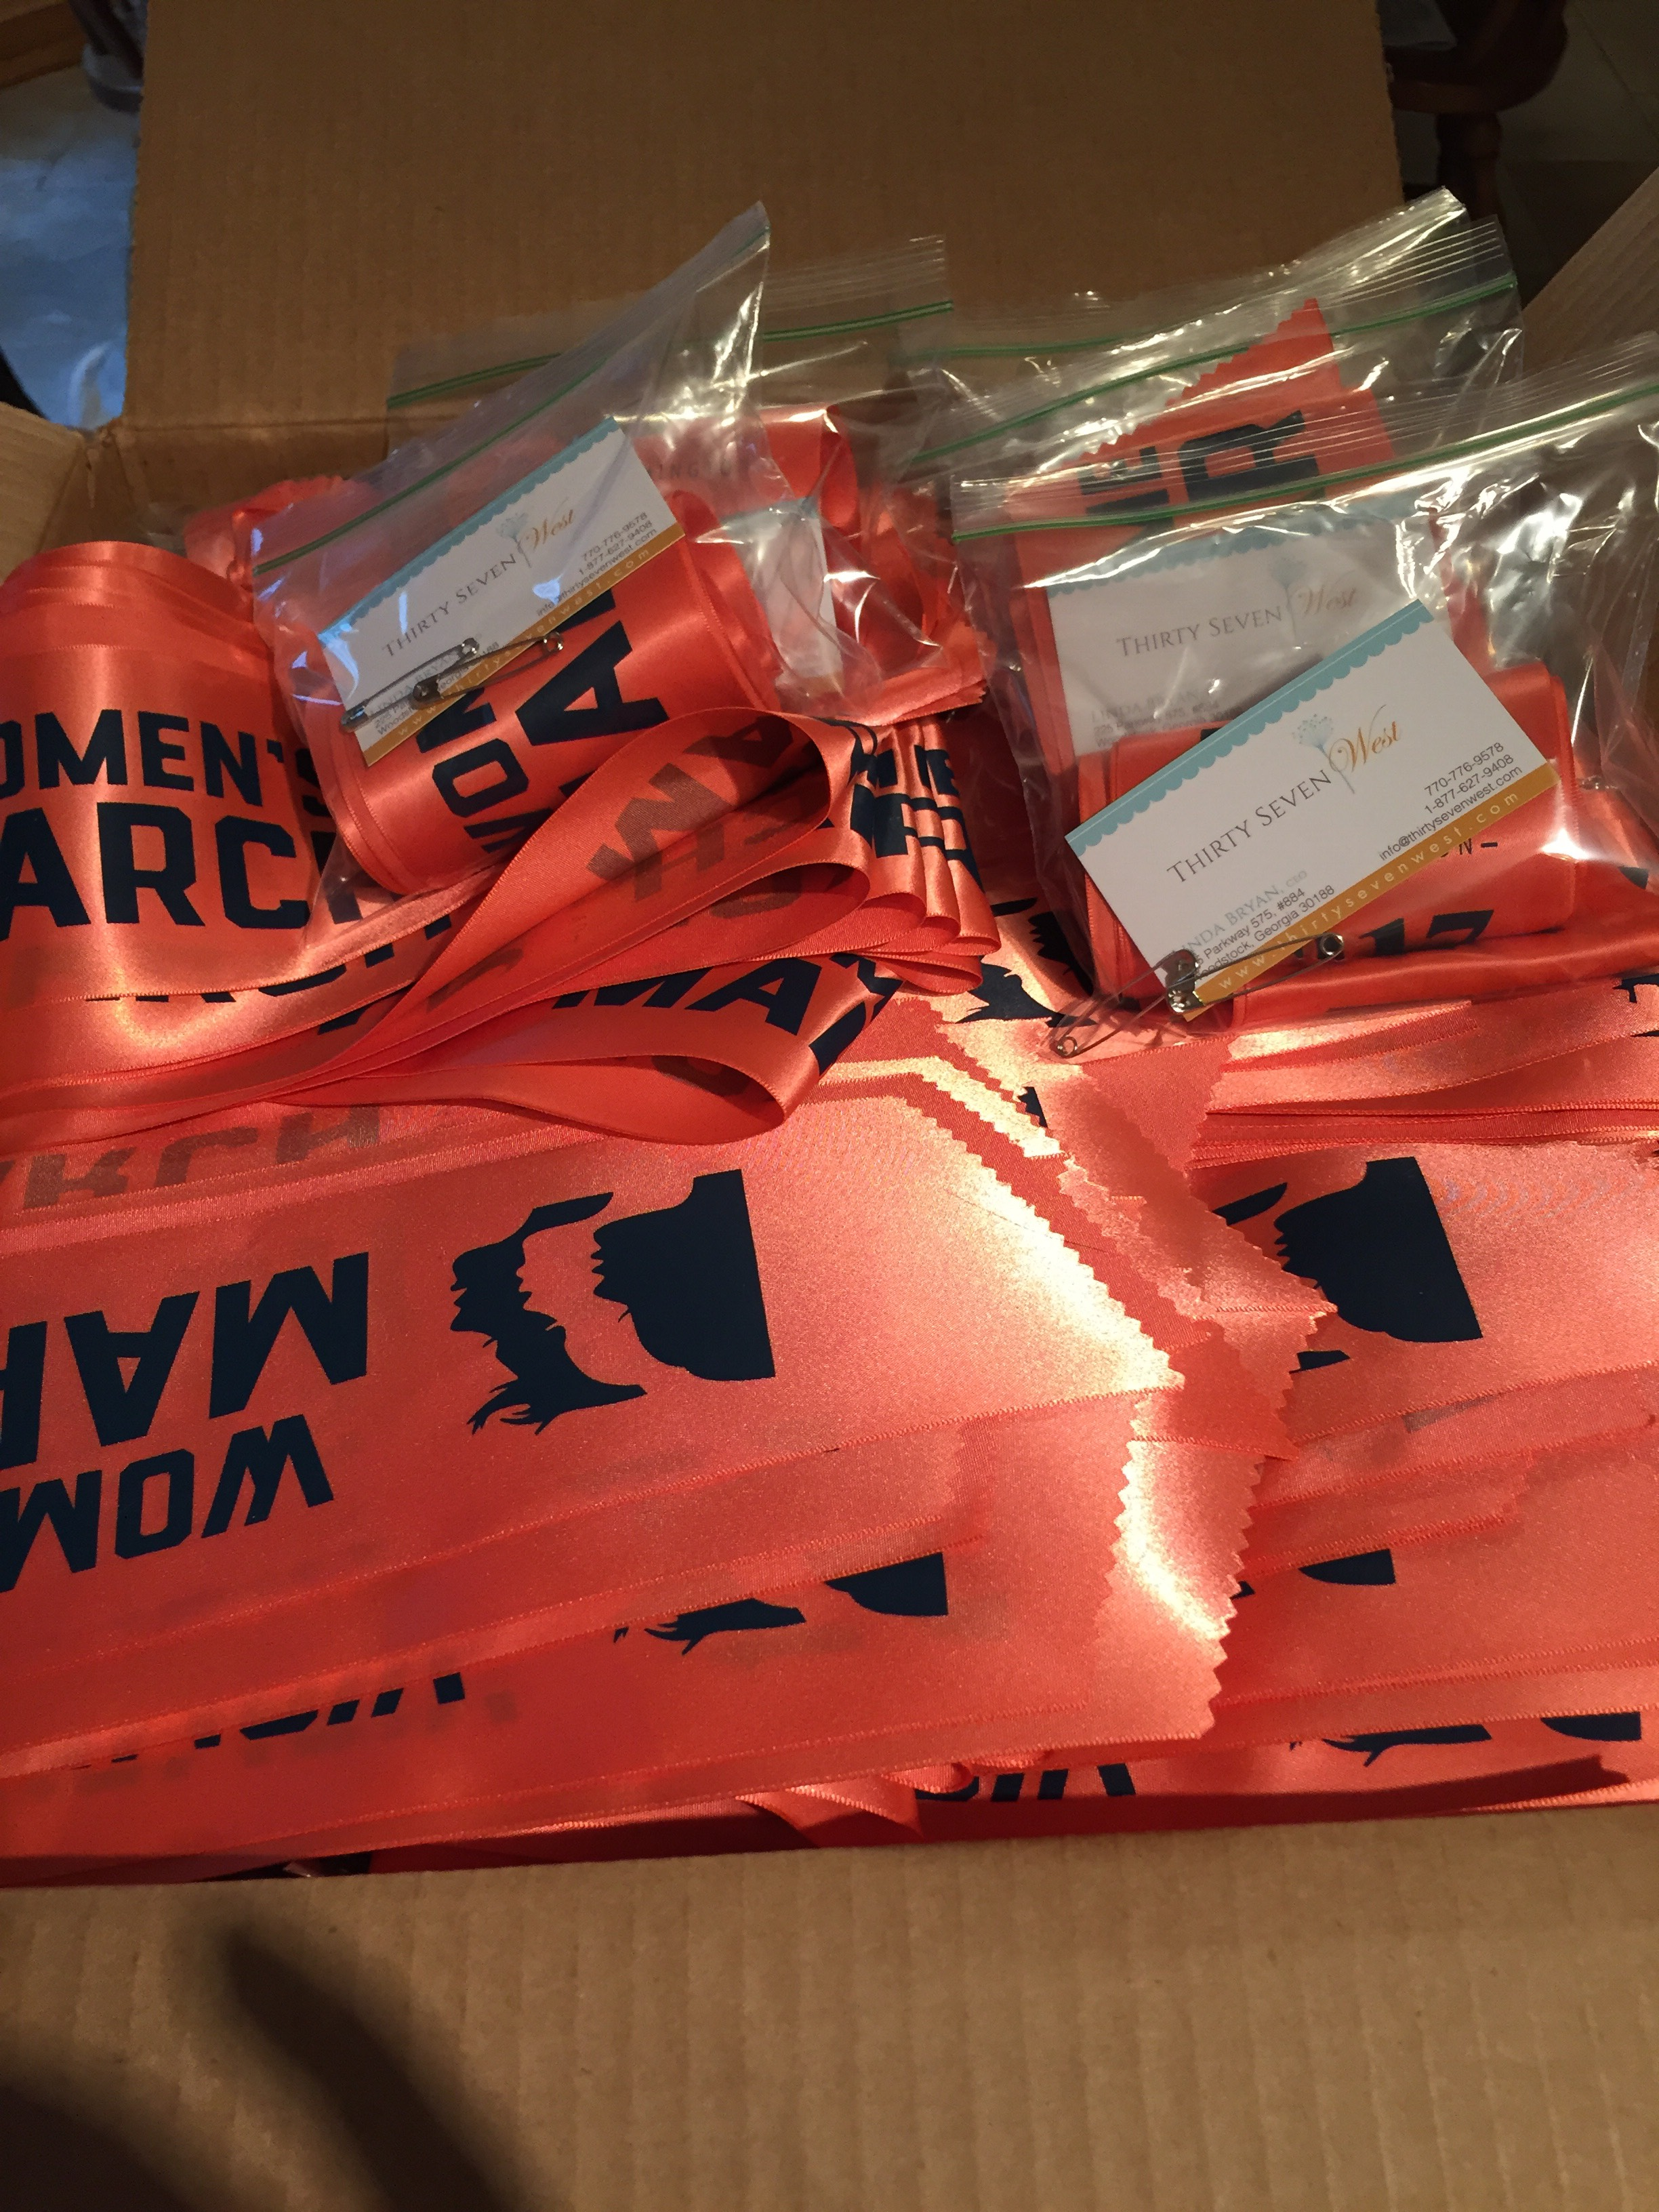 women-s-march-on-washington-2017-sashes-from-the-sash-supplier-of-salmon-colored-sashes-thirtysevenwest.com.jpg